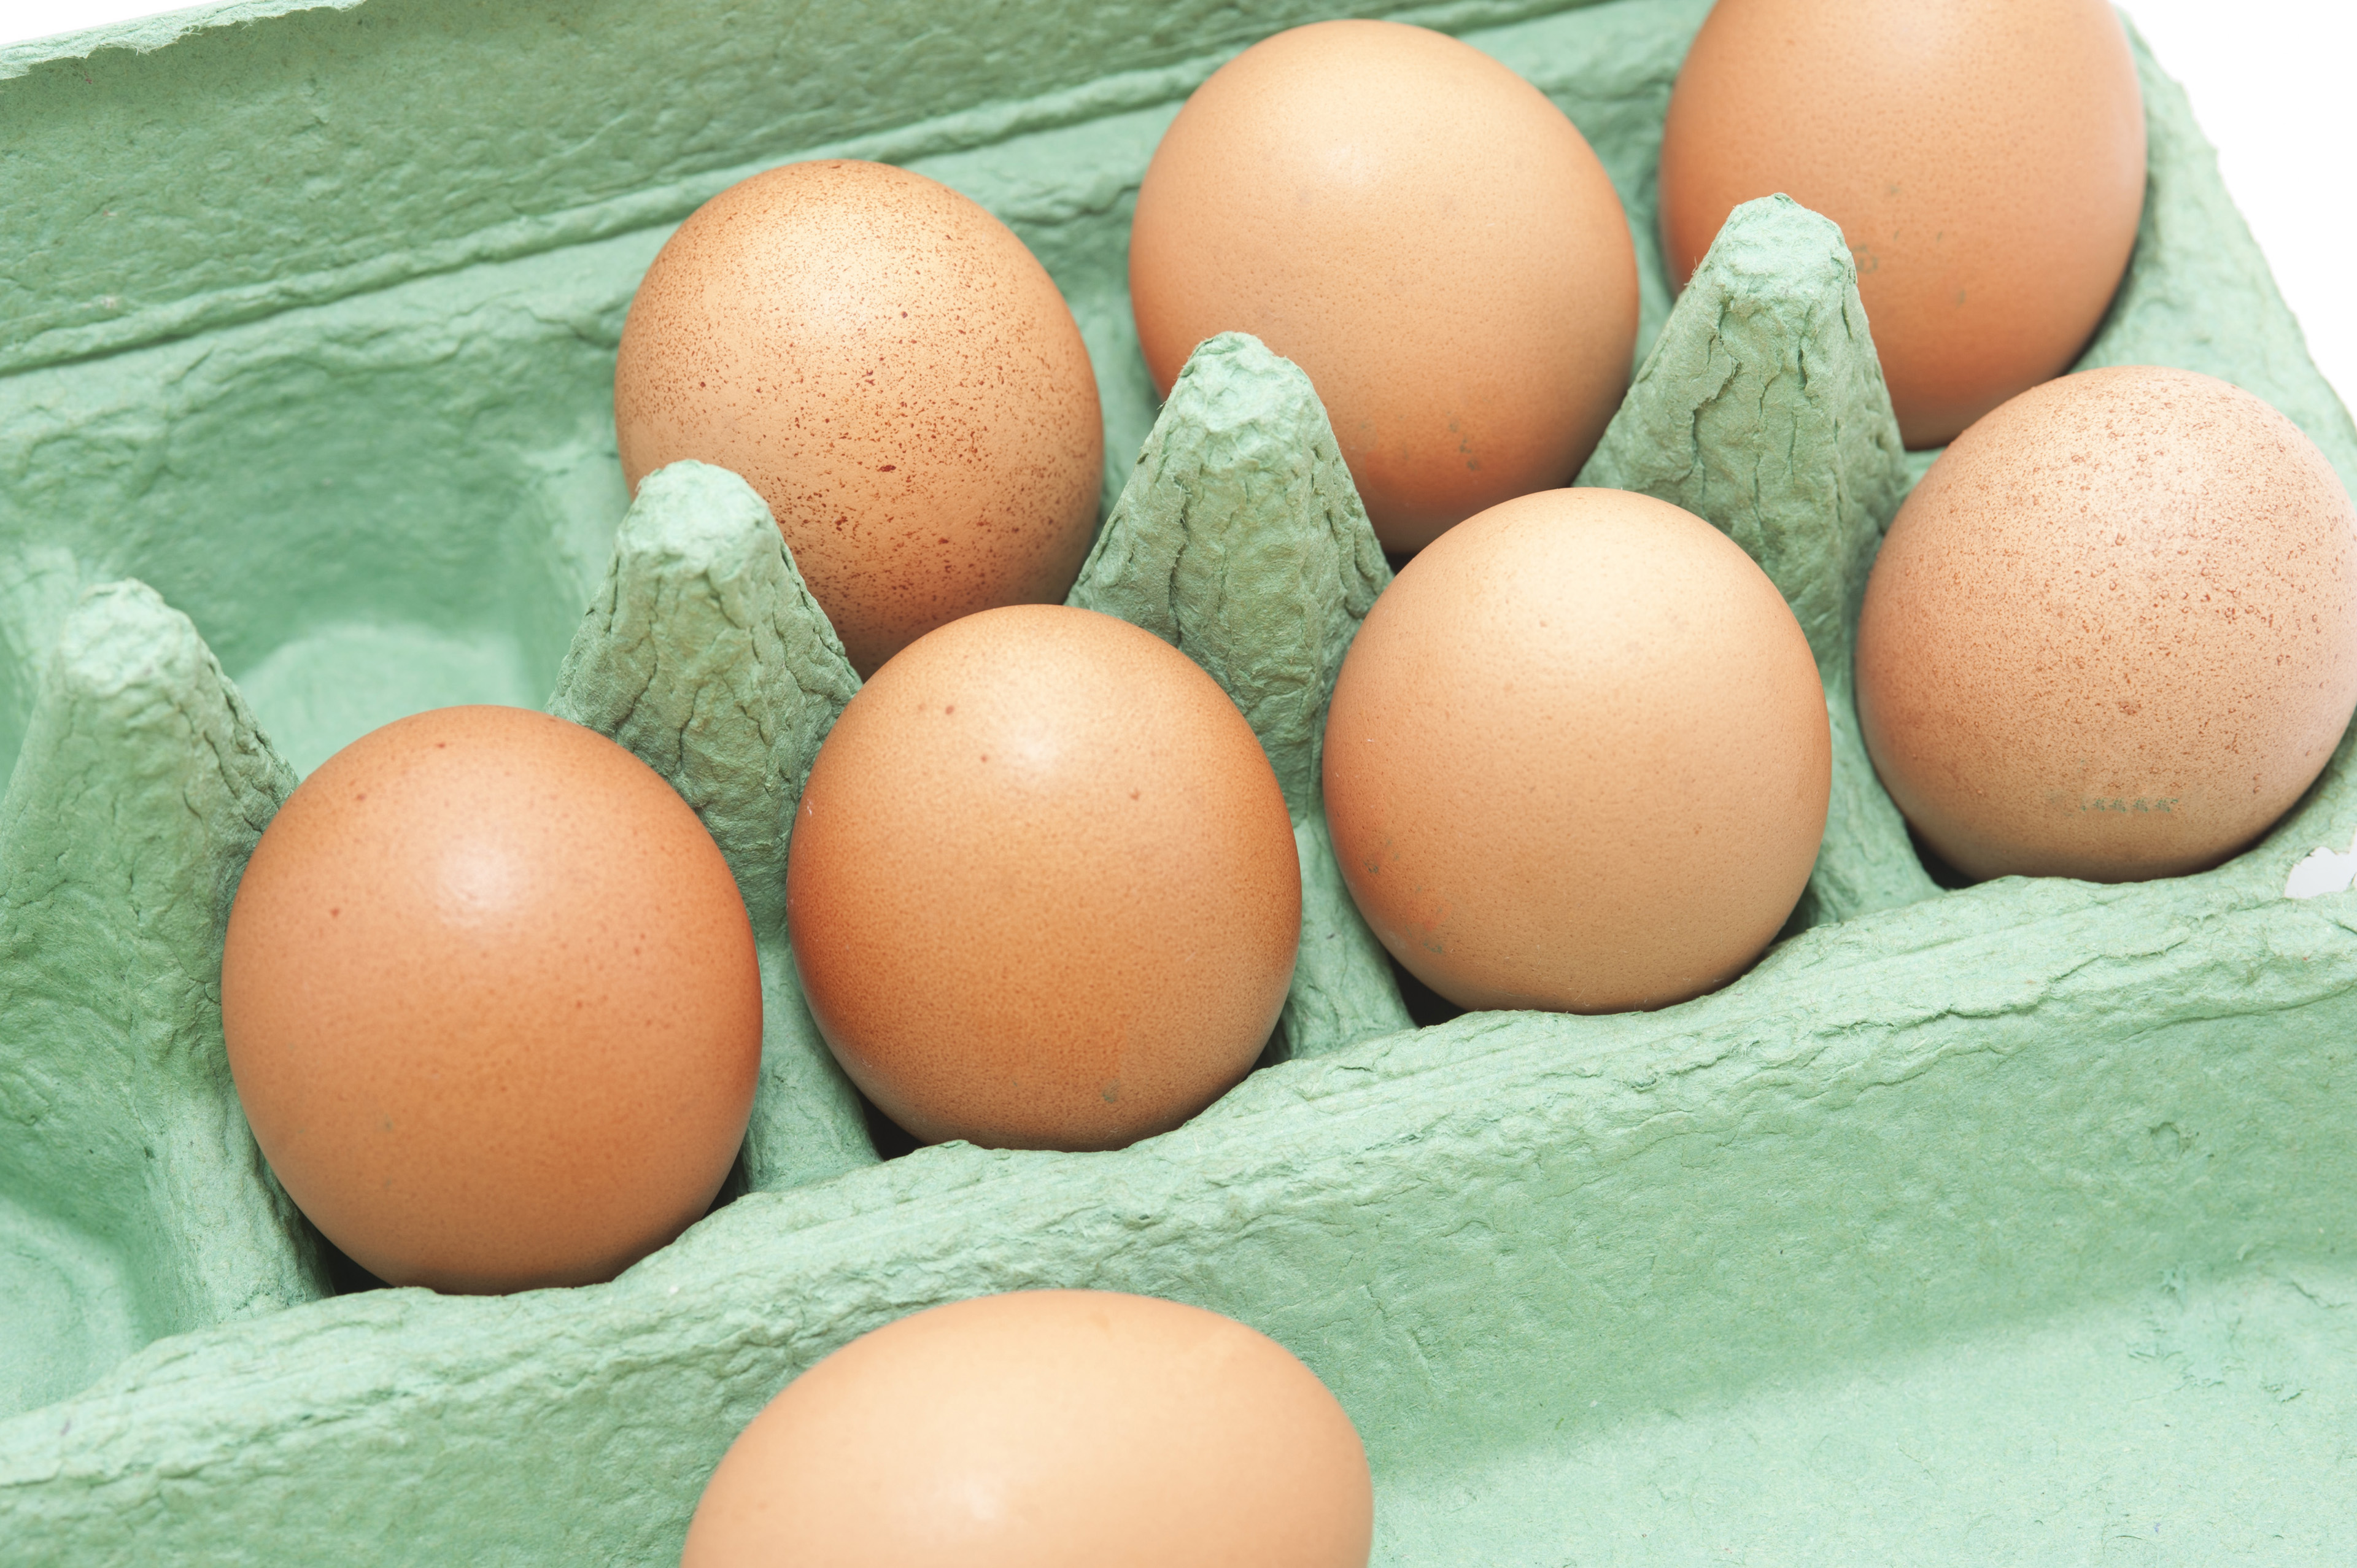 Fresh brown hens eggs in a cardboard carton retail packaging , high angle view of the open box